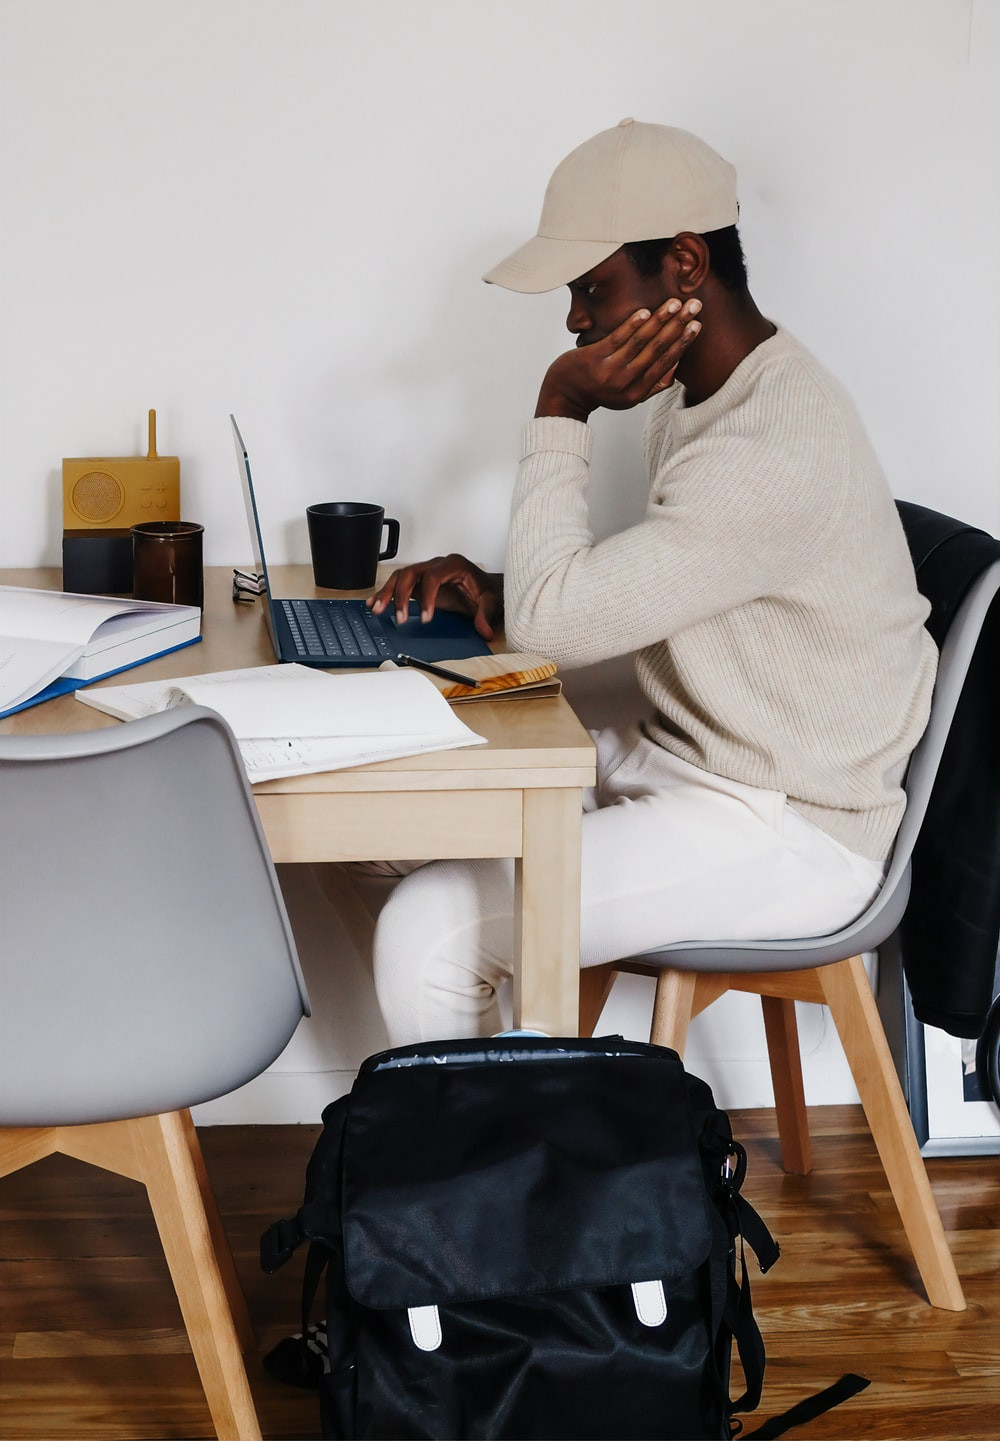 man in white sweater sitting on chair using Microsoft Surface Laptop 3